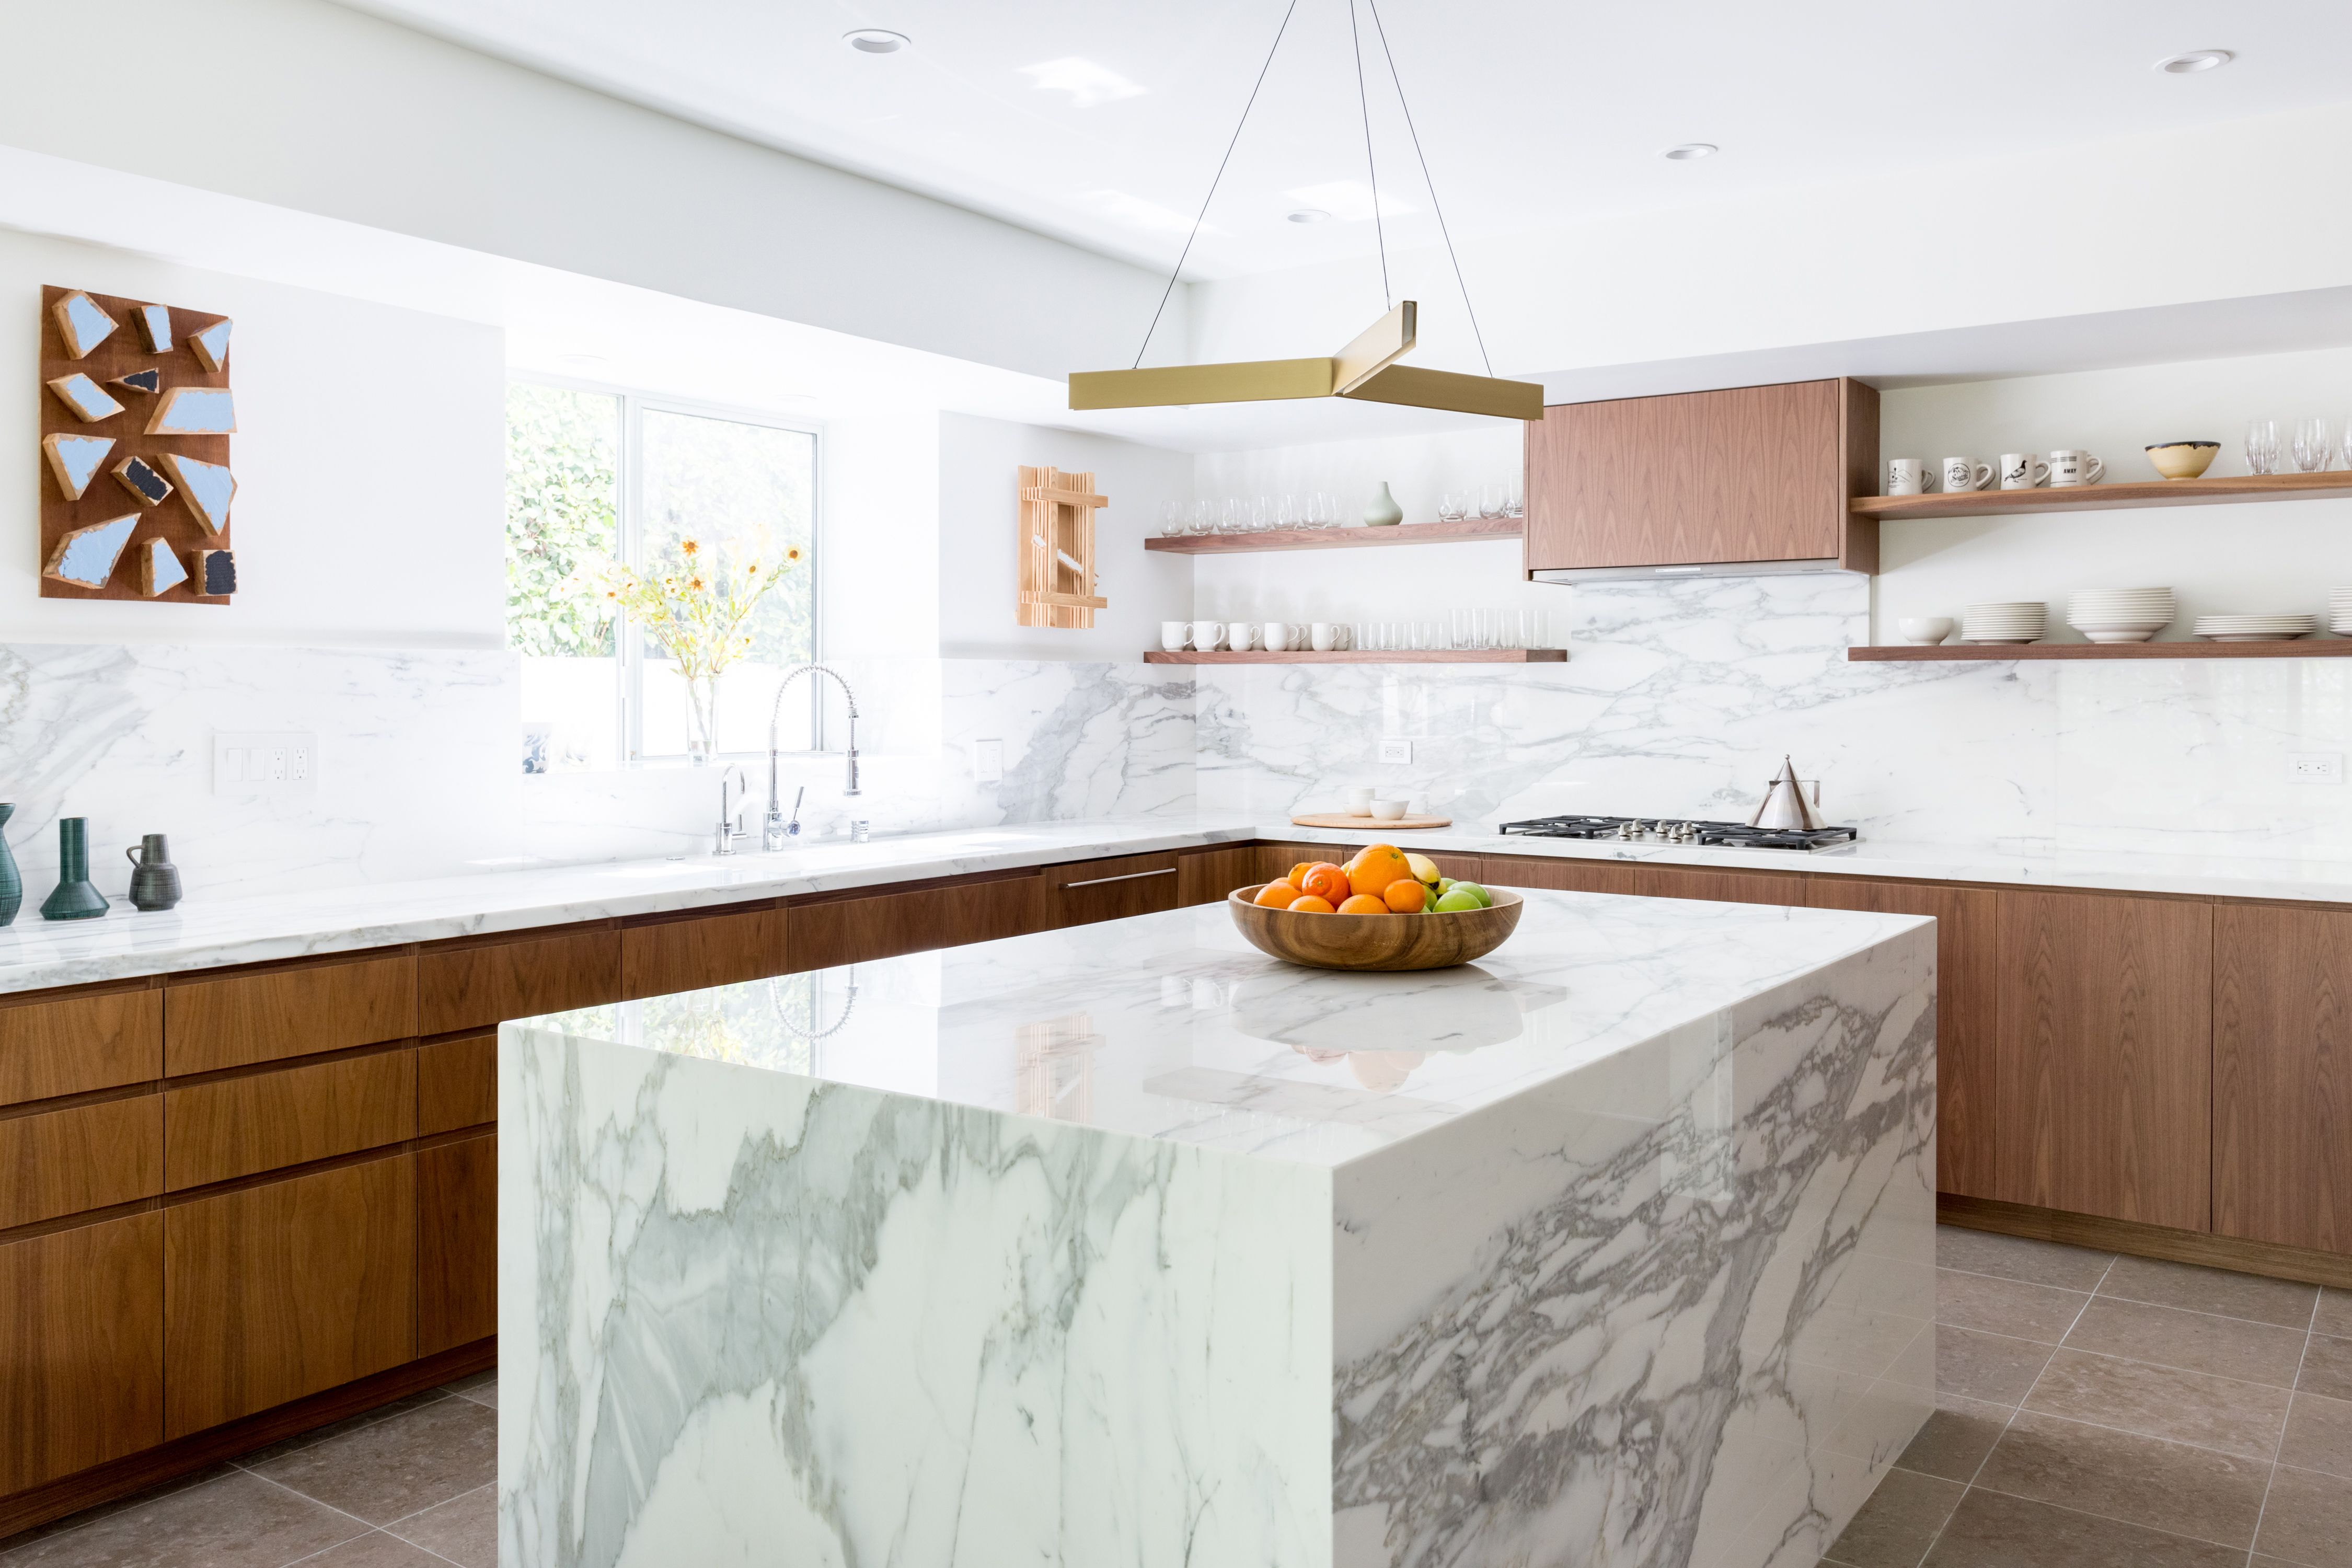 Best Beautiful Renovated Kitchen With Gold Carrera Marble 640 x 480